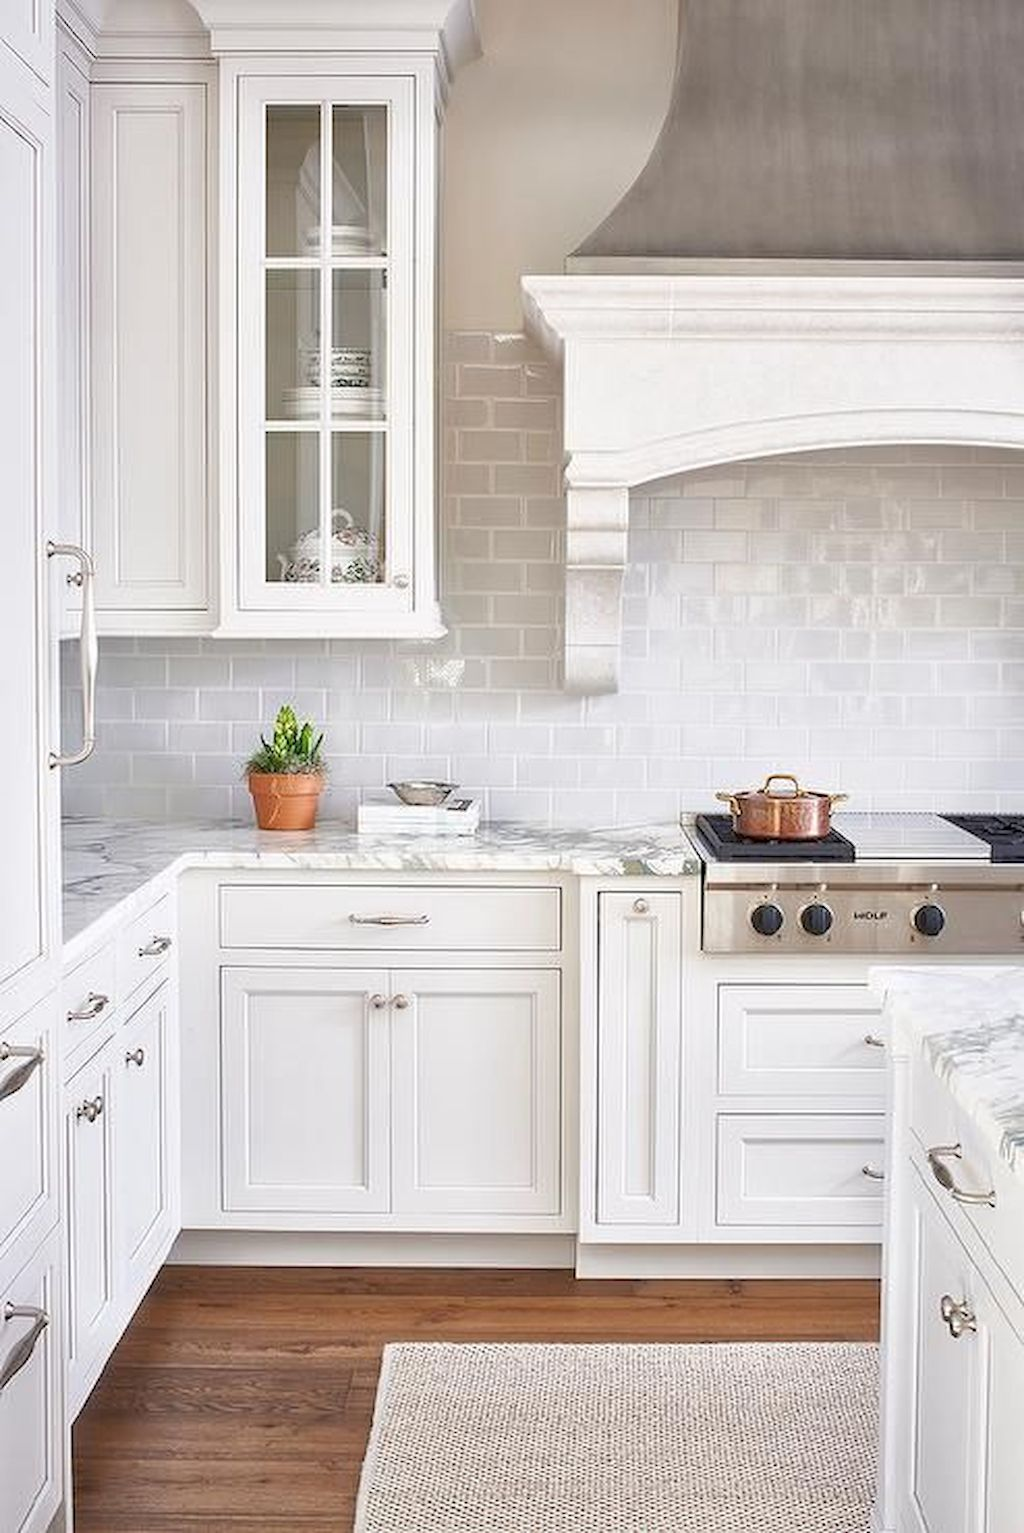 Bright Kitchen with White Kitchen Concept that Never Look Boring Part 11